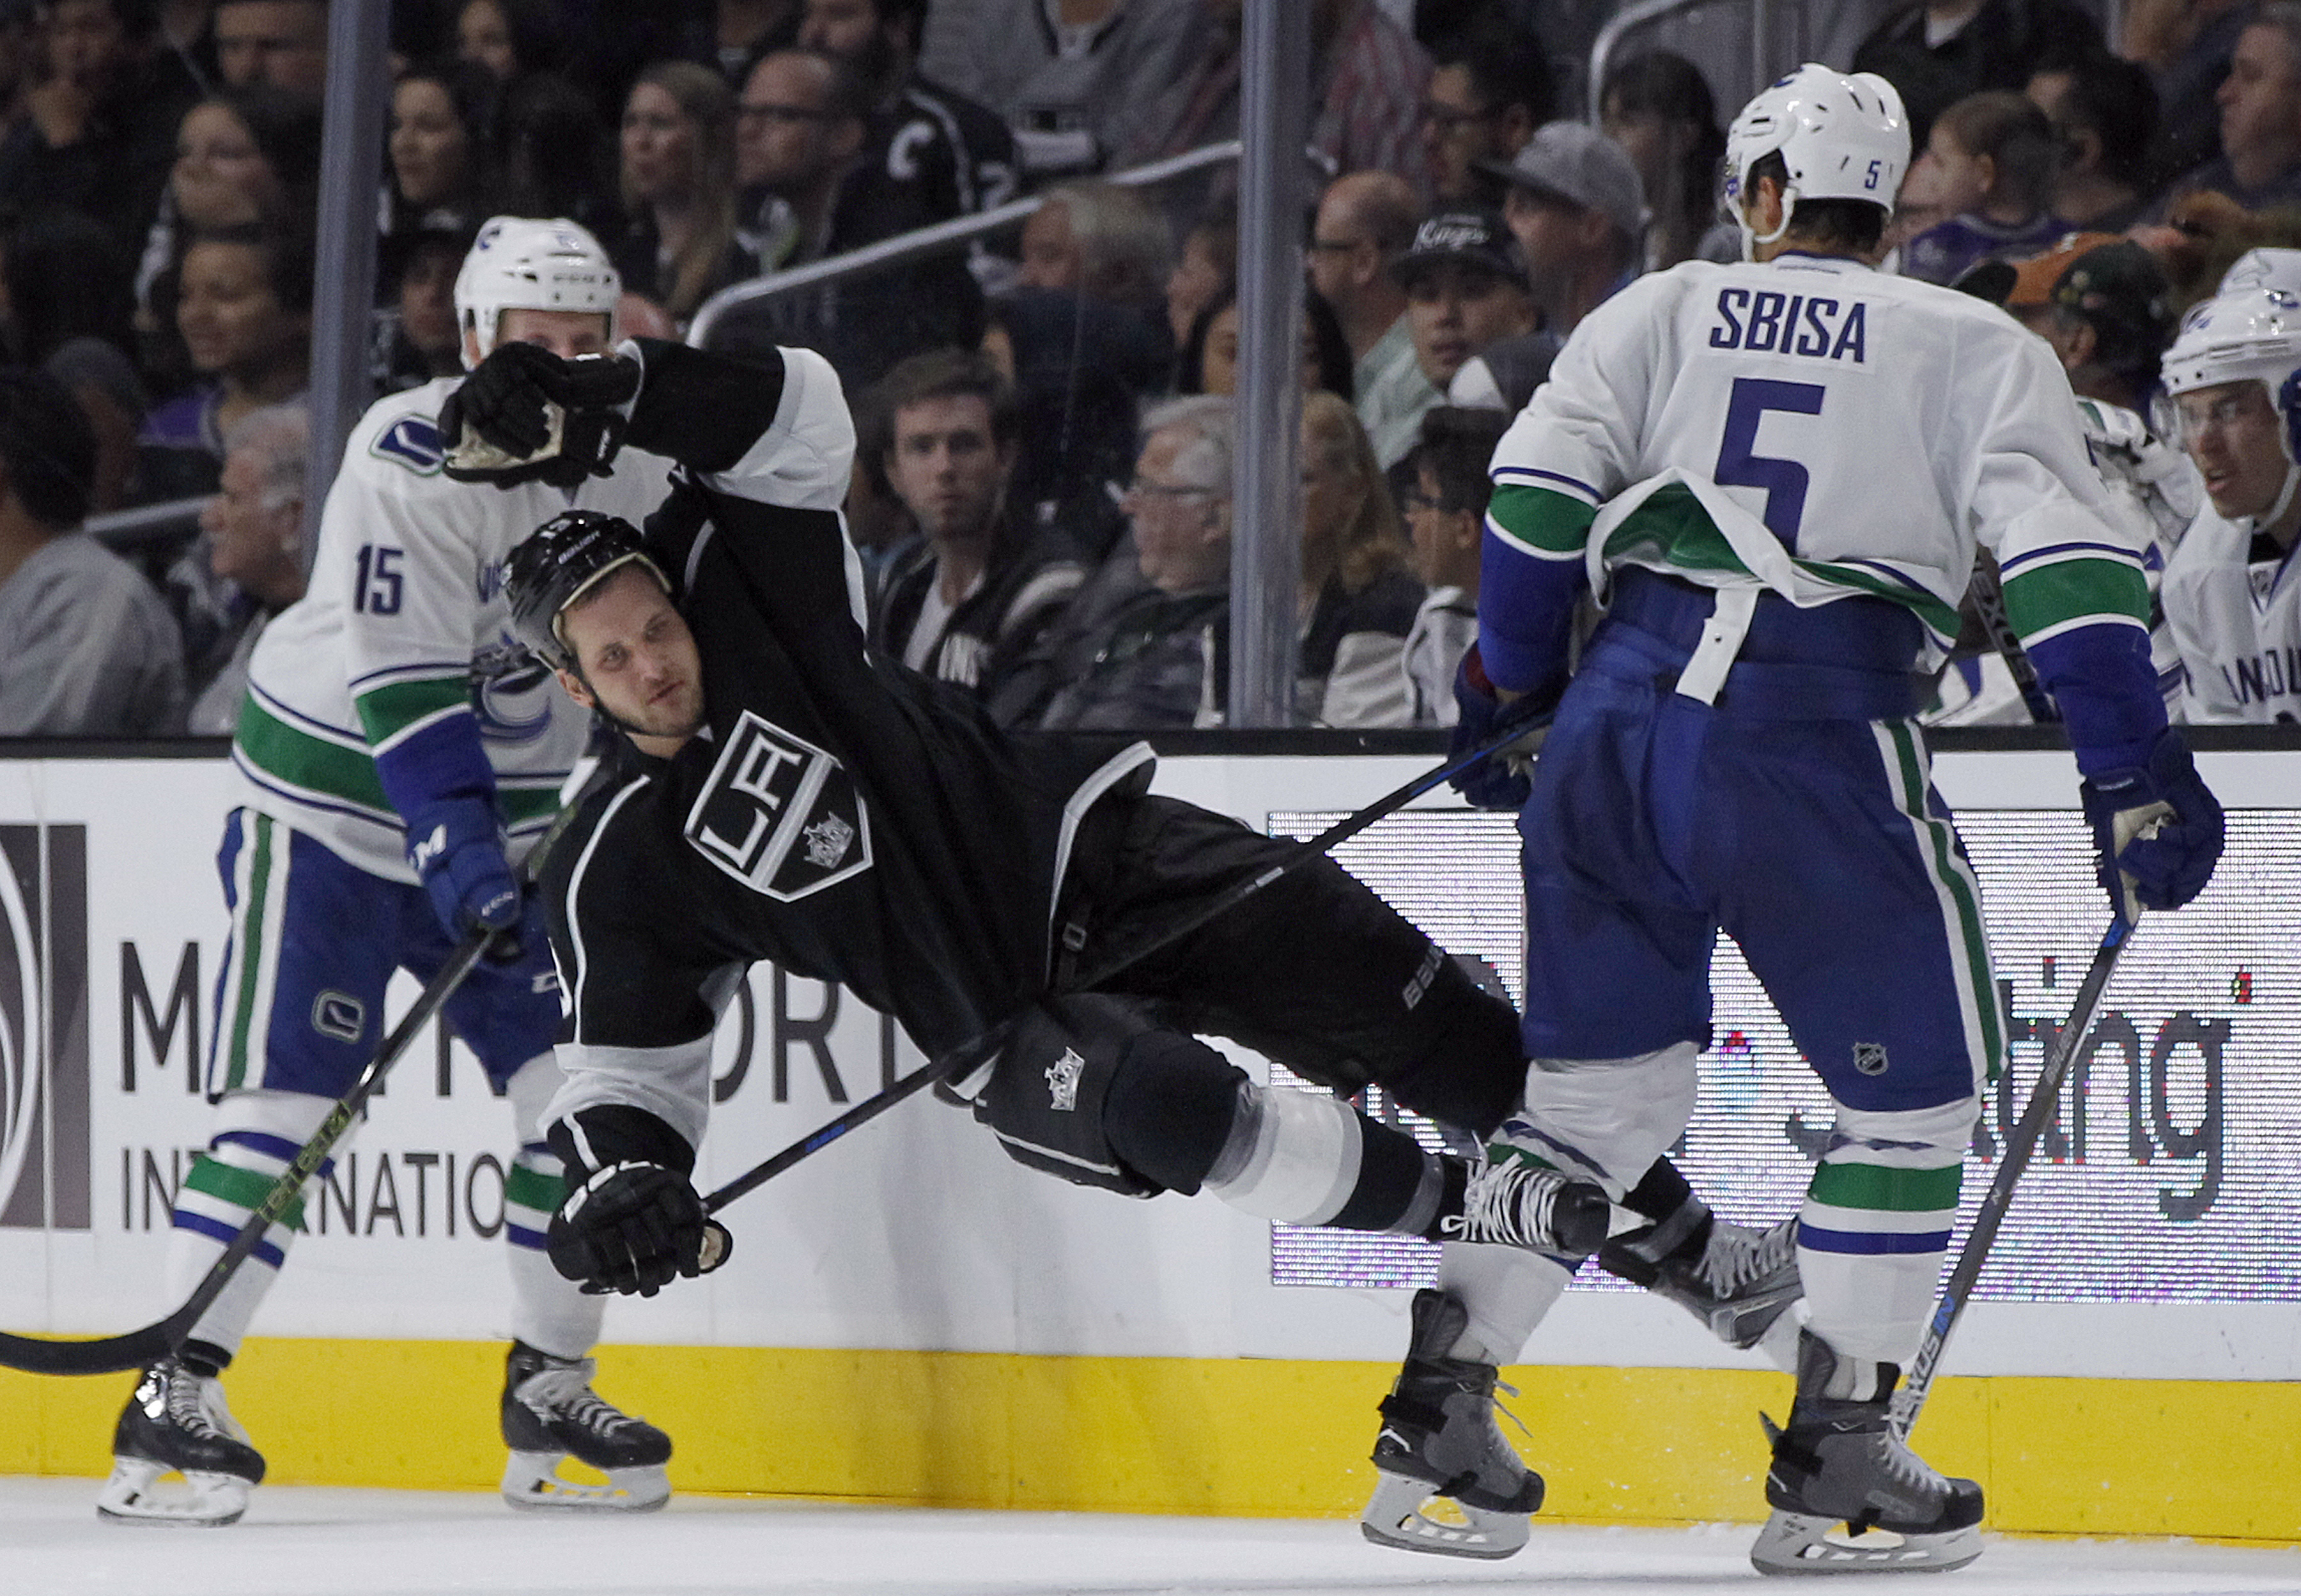 Los Angeles Kings left wing Kyle Clifford, center, gets knocked to the ice by Vancouver Canucks defenseman Luca Sbisa (5), of Italy, during the second period of an NHL hockey game in Los Angeles, Tuesday, Oct. 13, 2015. (AP Photo/Alex Gallardo)